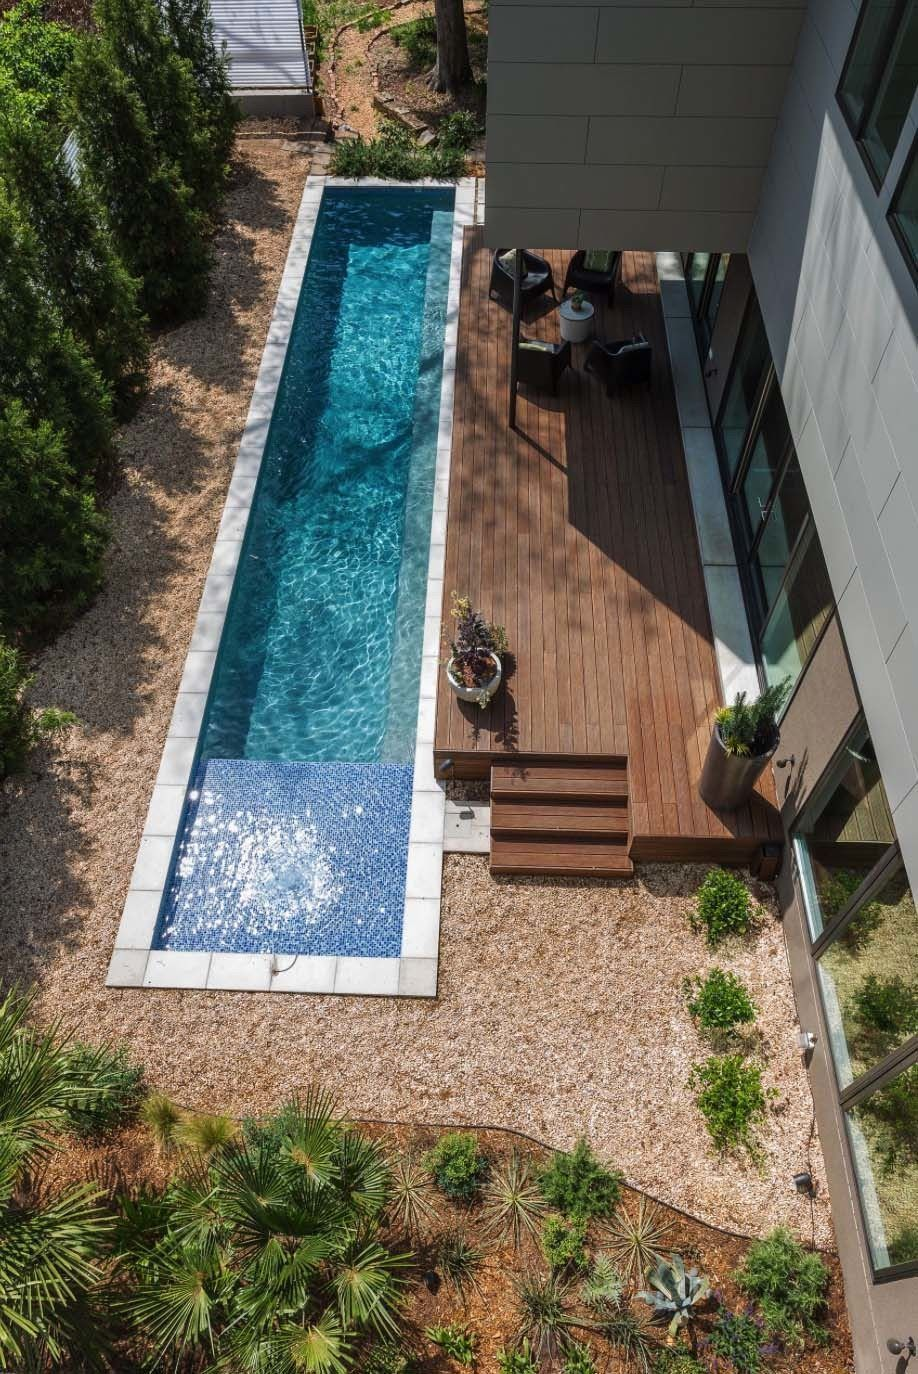 54 Awesome Backyard Small Pool Design Ideas For Your Home Swimming Pools Backyard Small Pool Design Small Backyard Pools Backyard mini swimming pool